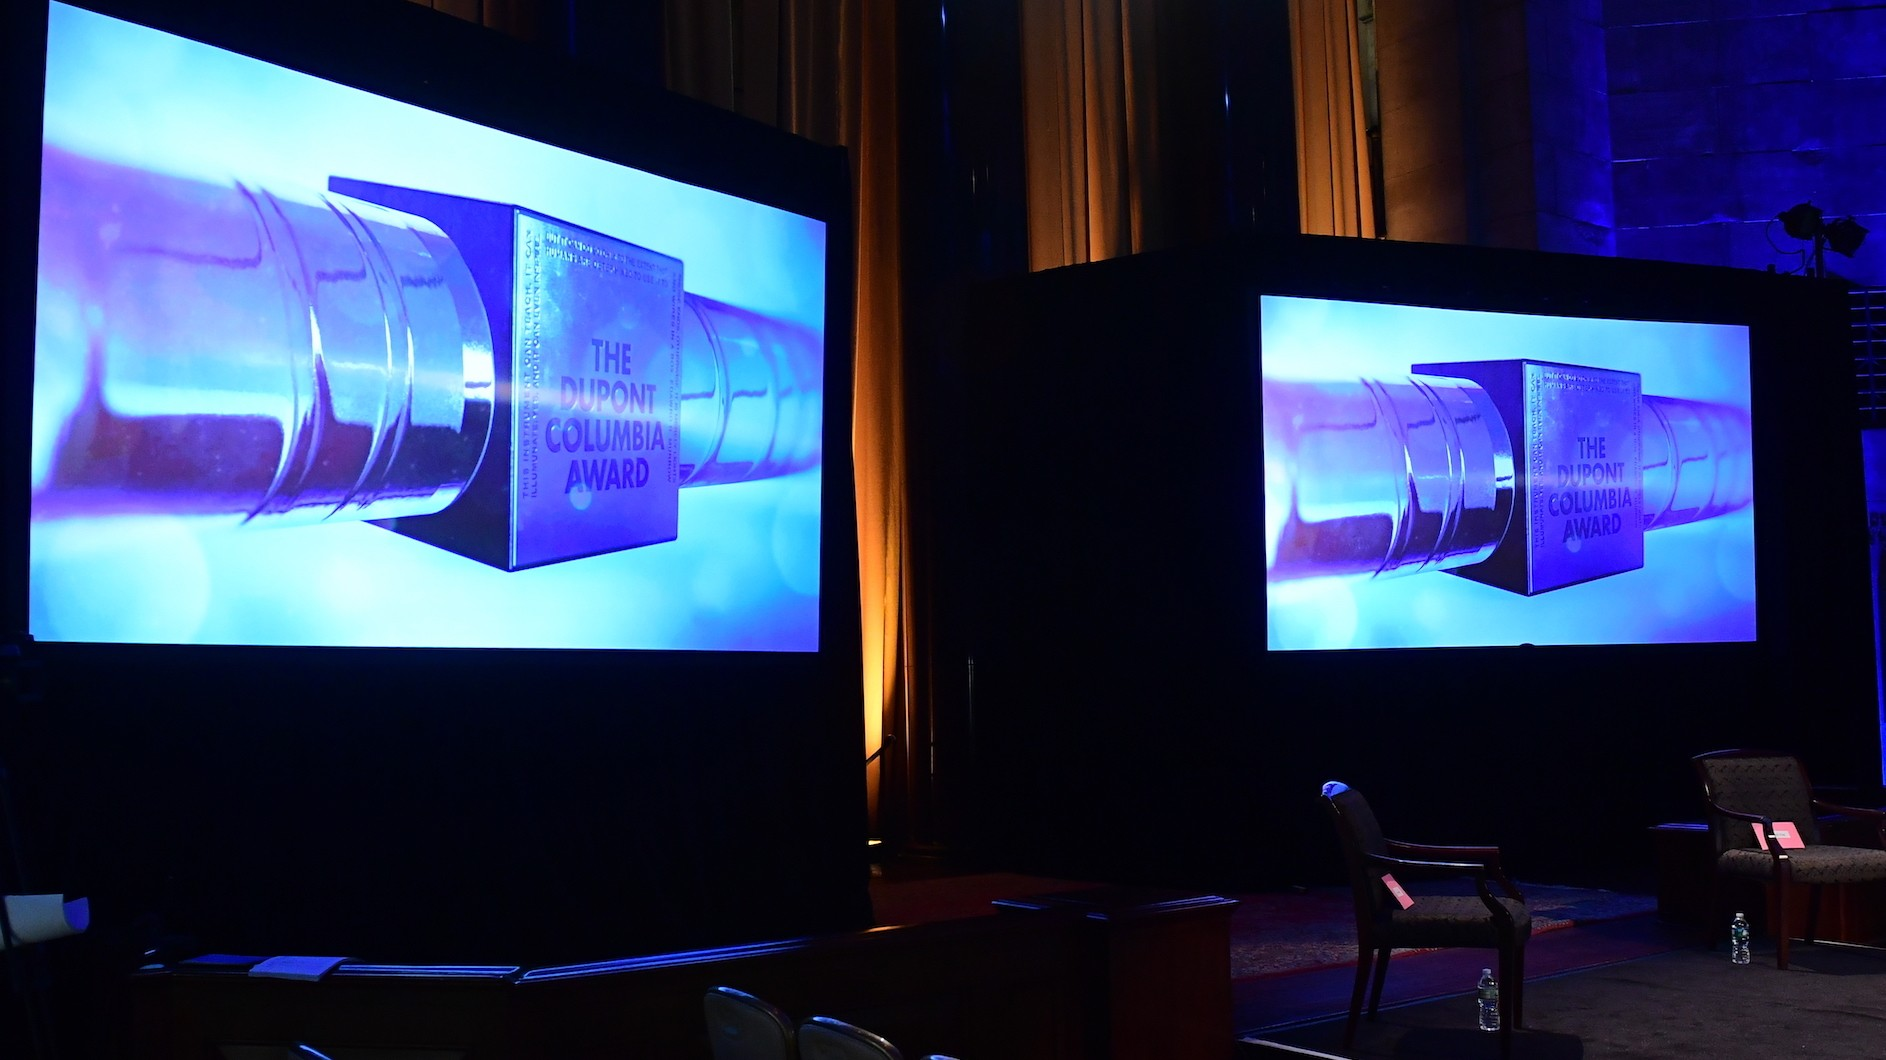 Two big screens with identical images of a silver baton with duPont Columbia Award written on them